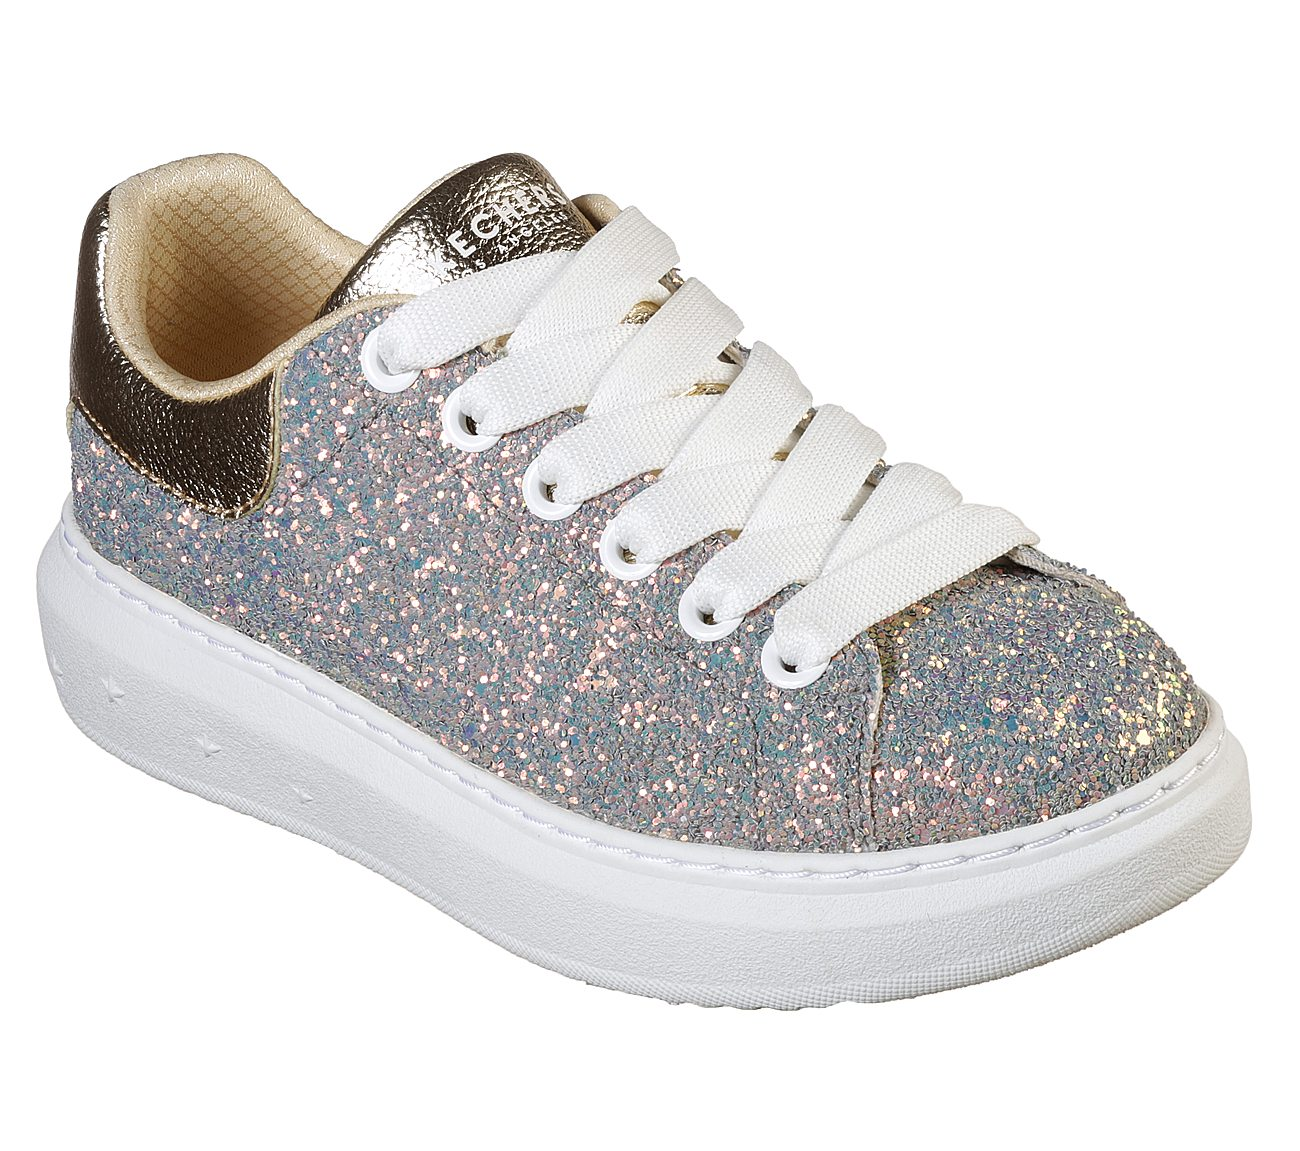 Glitter Rockers Lace-Up Sneakers Shoes